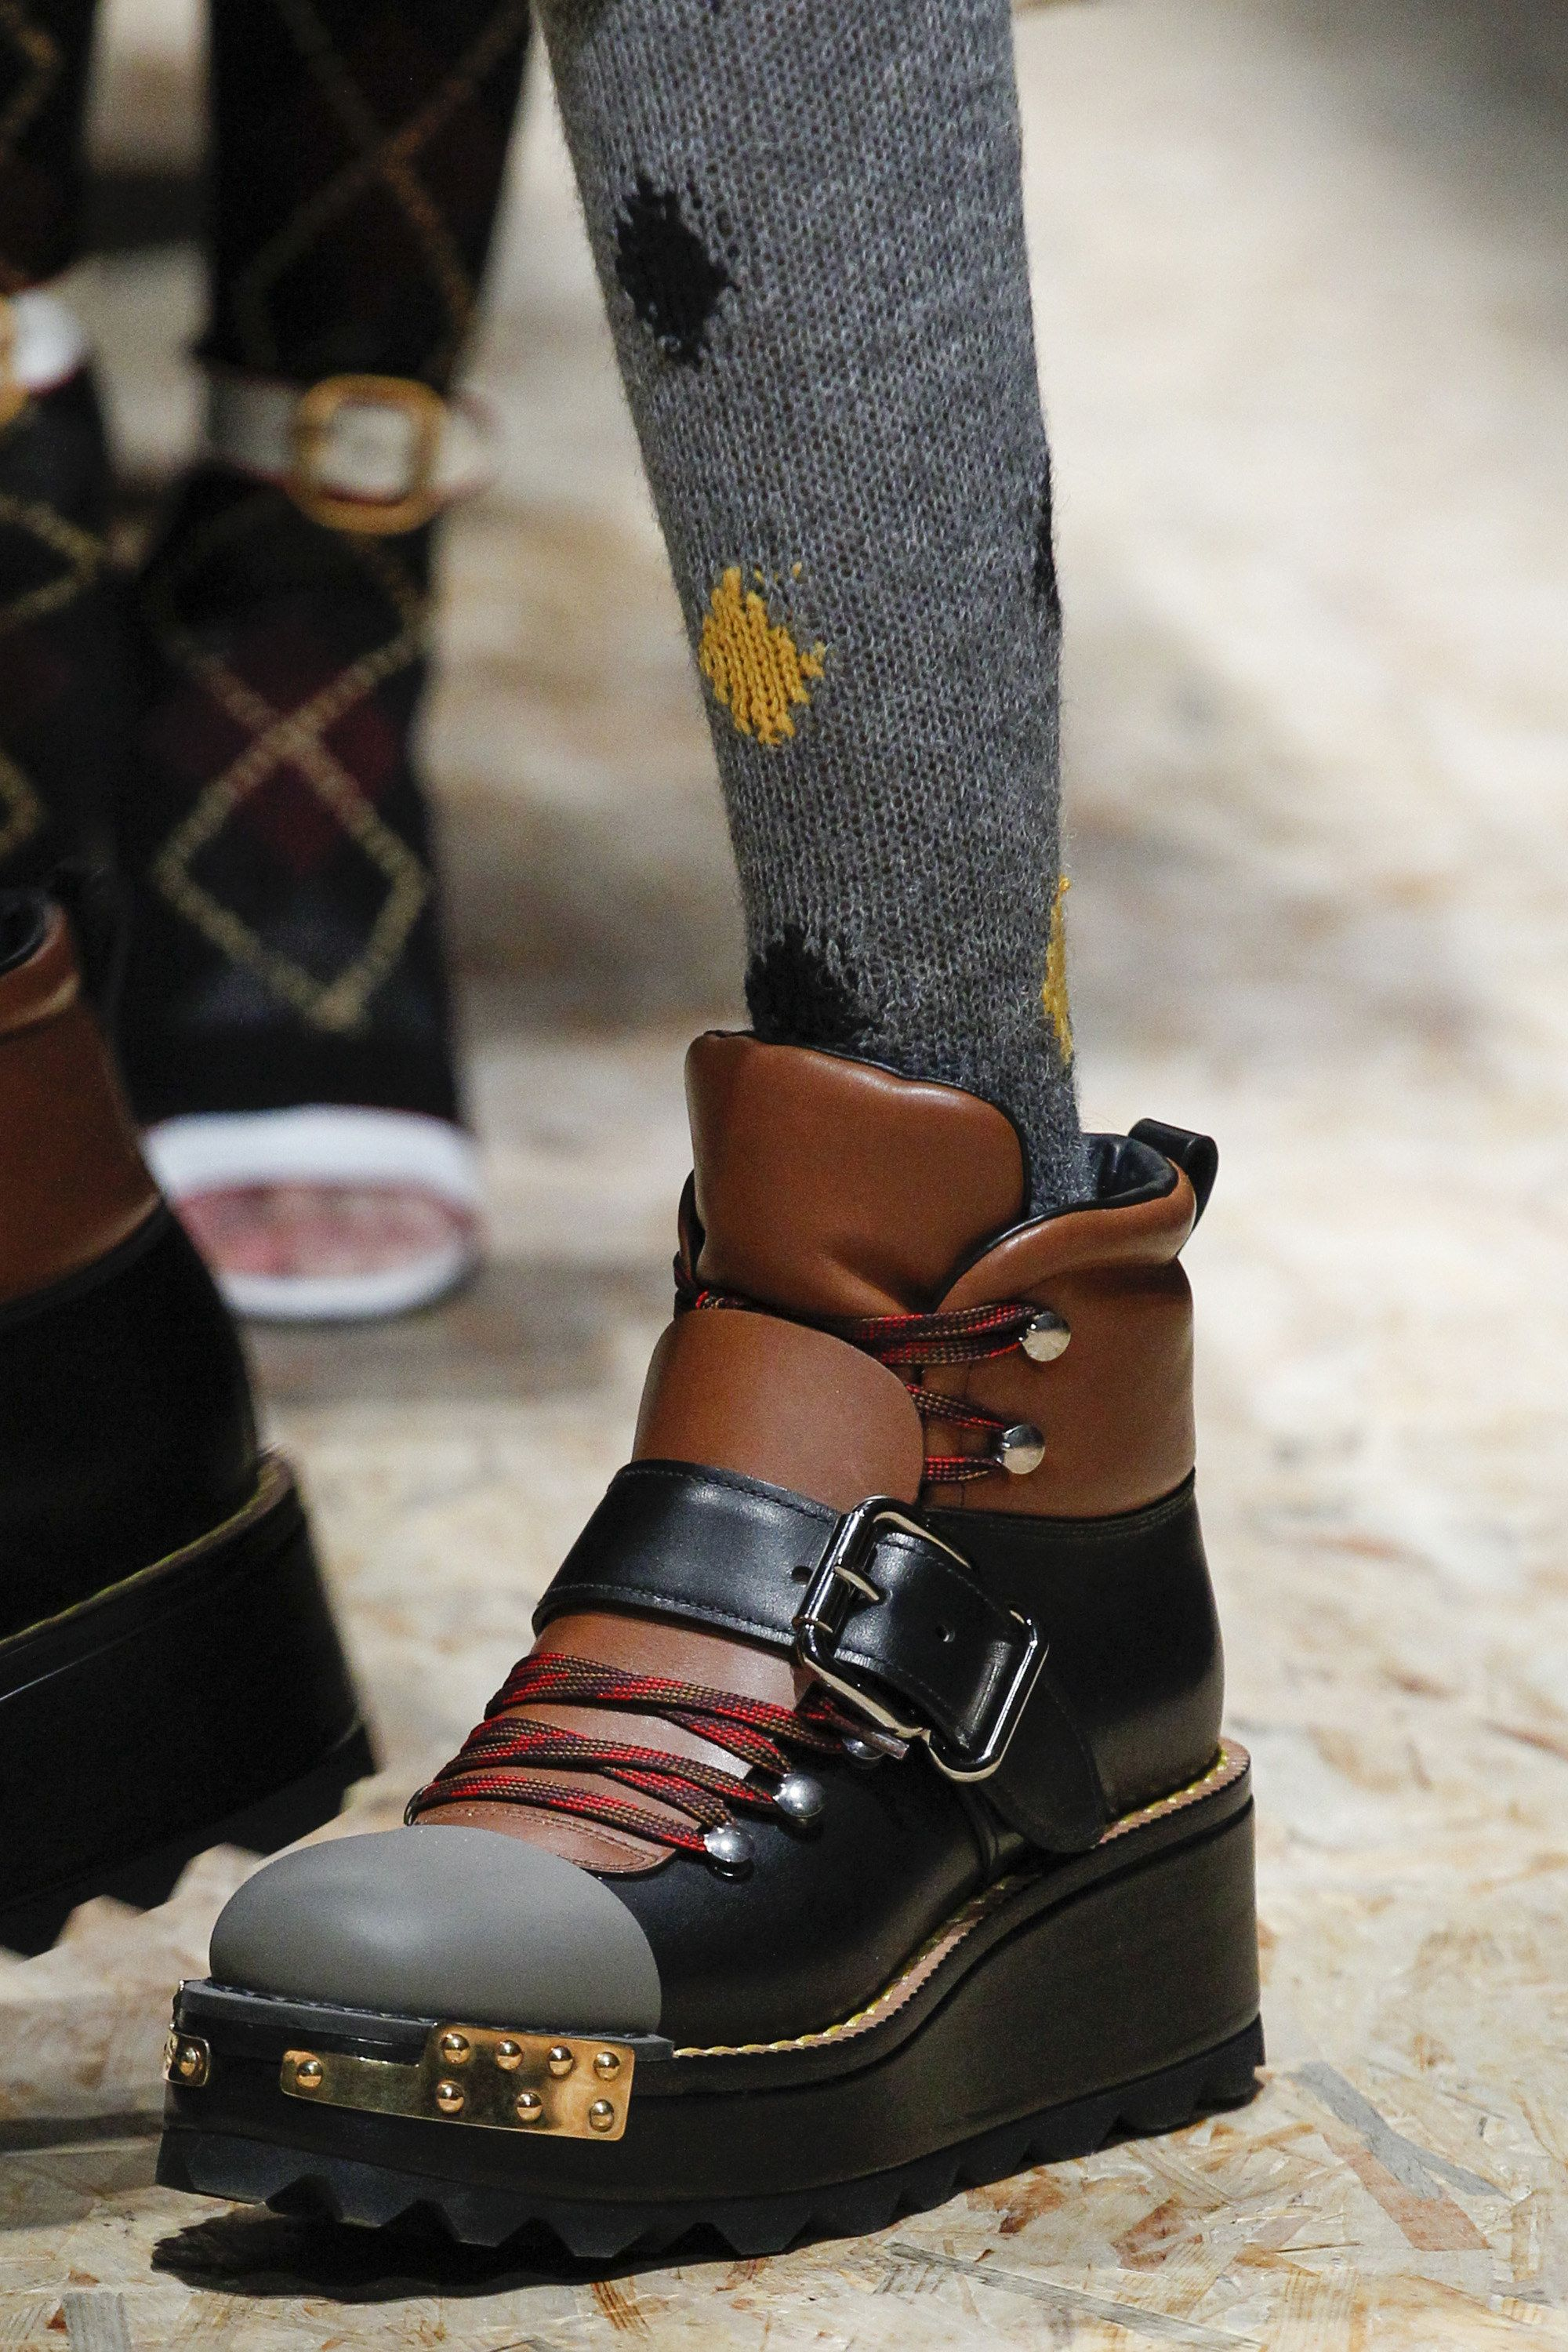 Prada Fall 2016 Ready To Wear Fashion Show Boots Winter Shoes